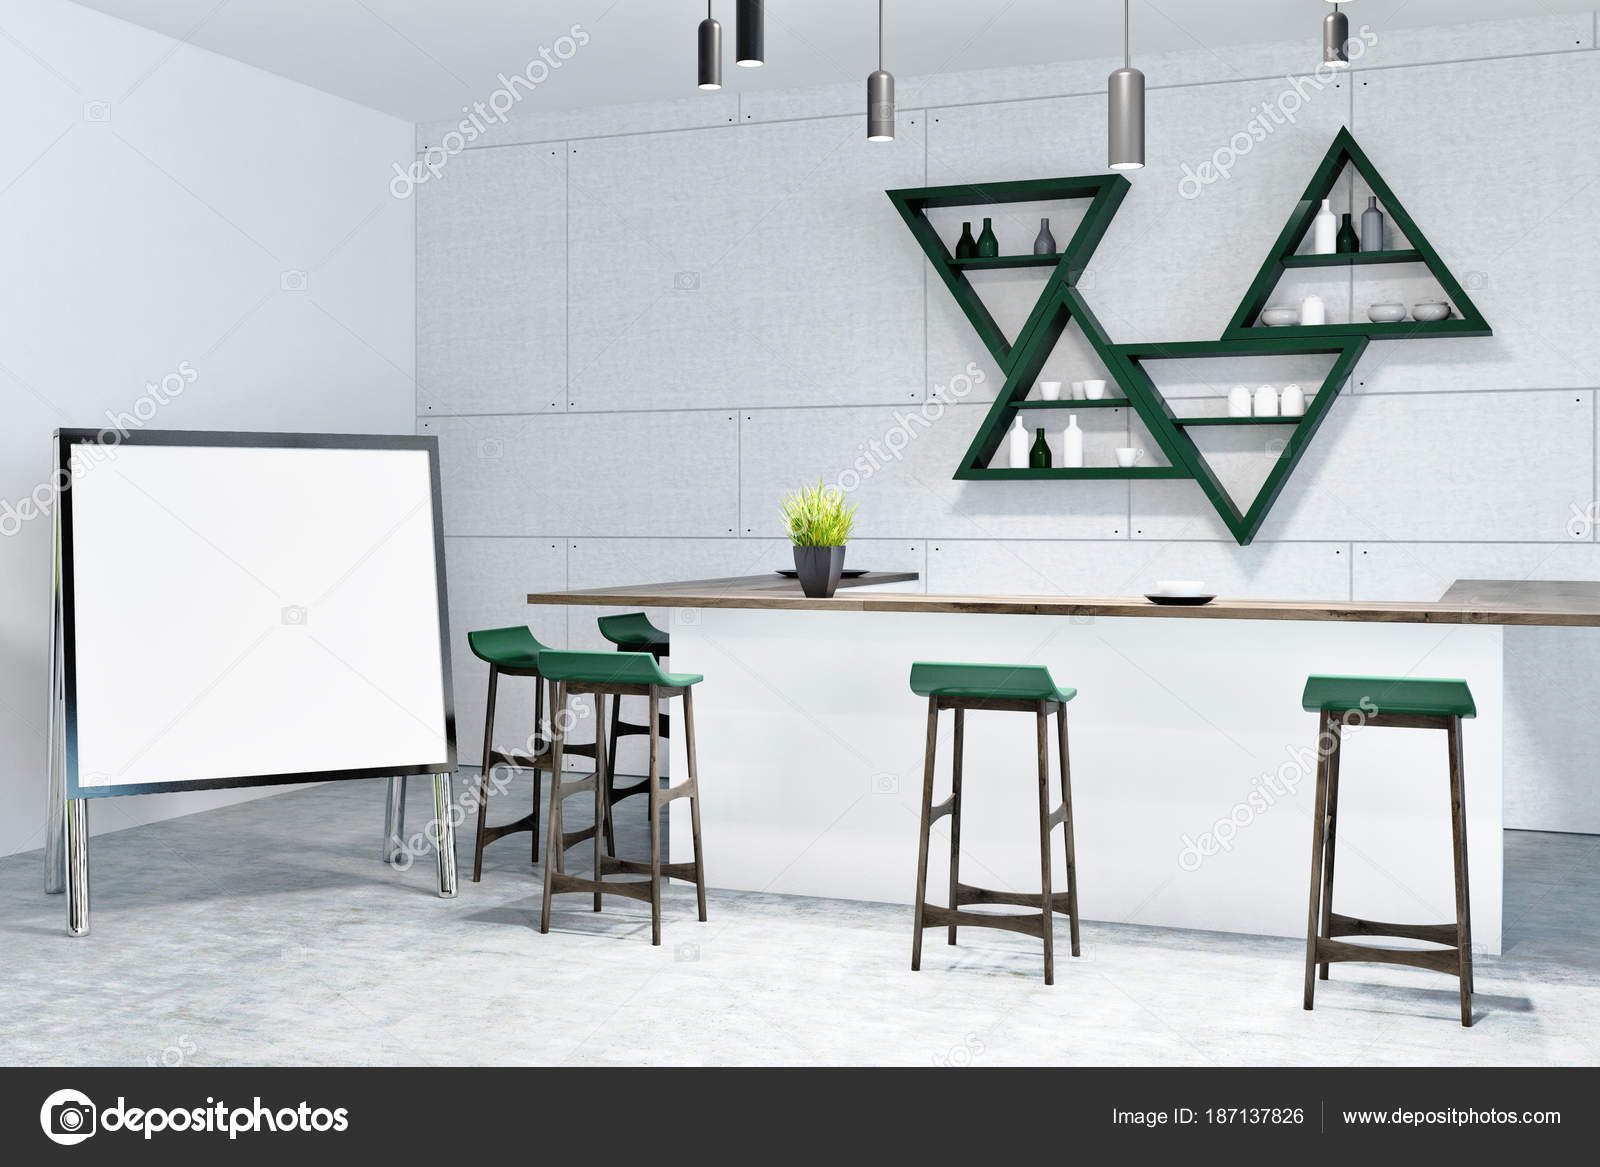 Bianco e legno verde bar interni mock up u2014 foto stock